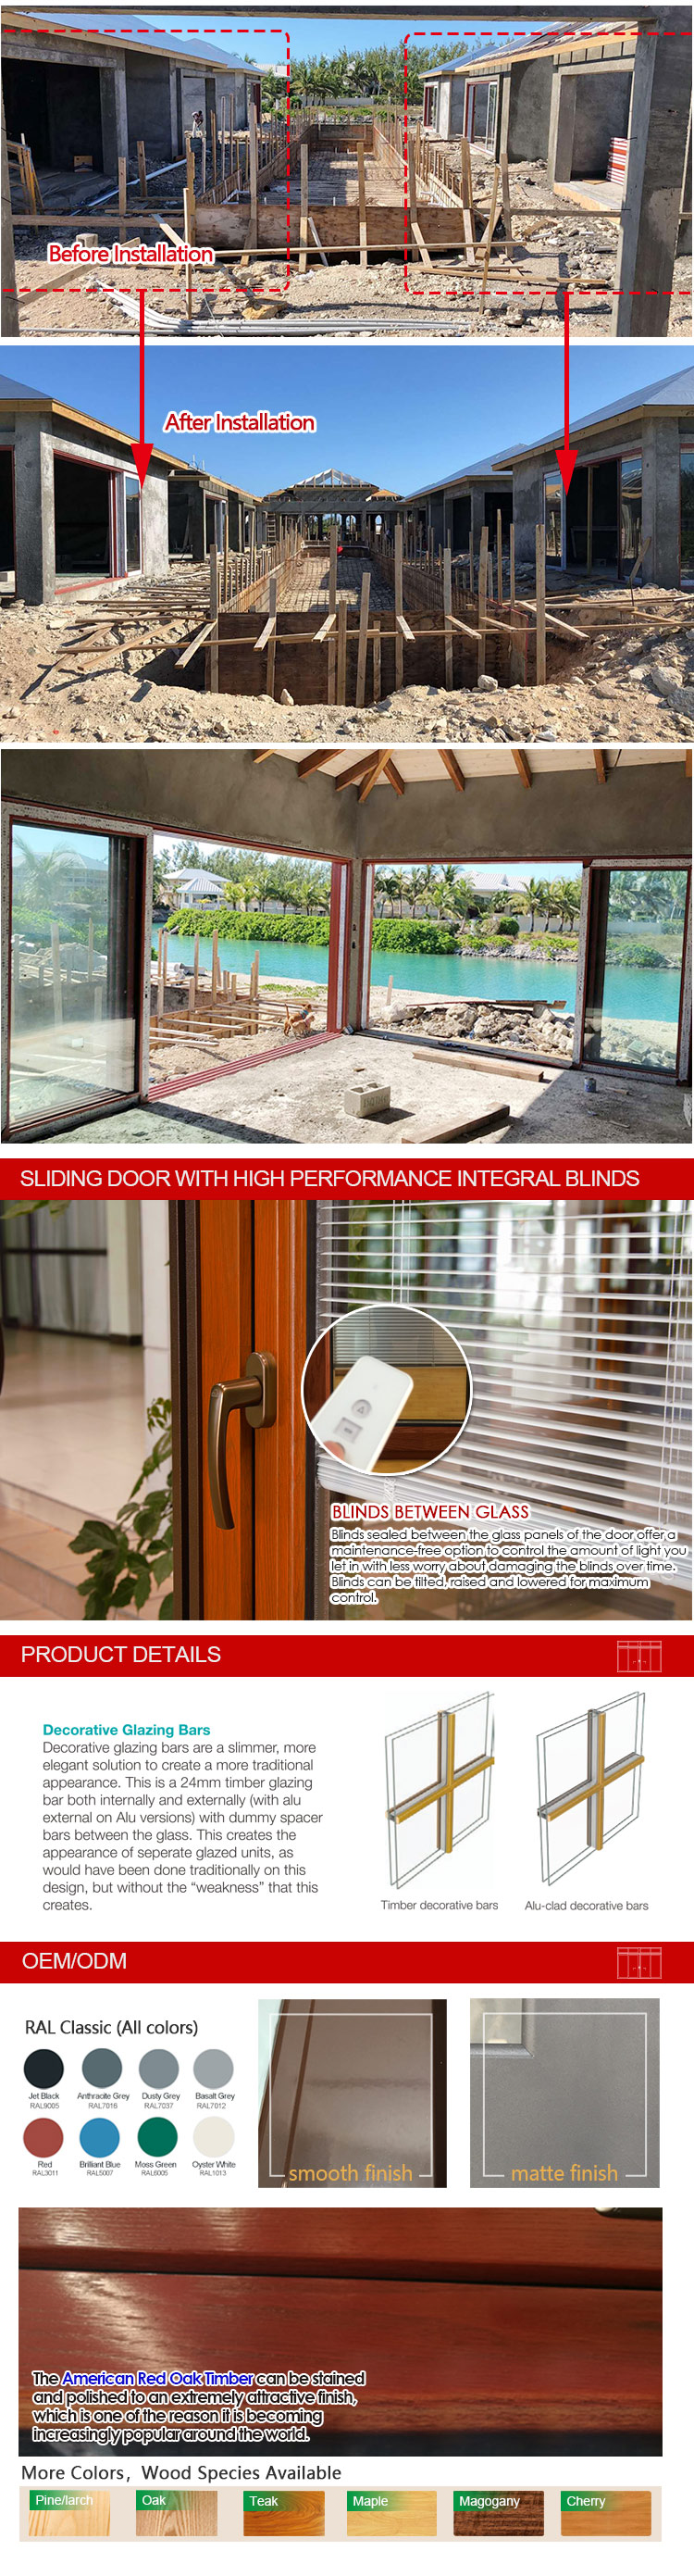 Automatic sliding door system parts kit